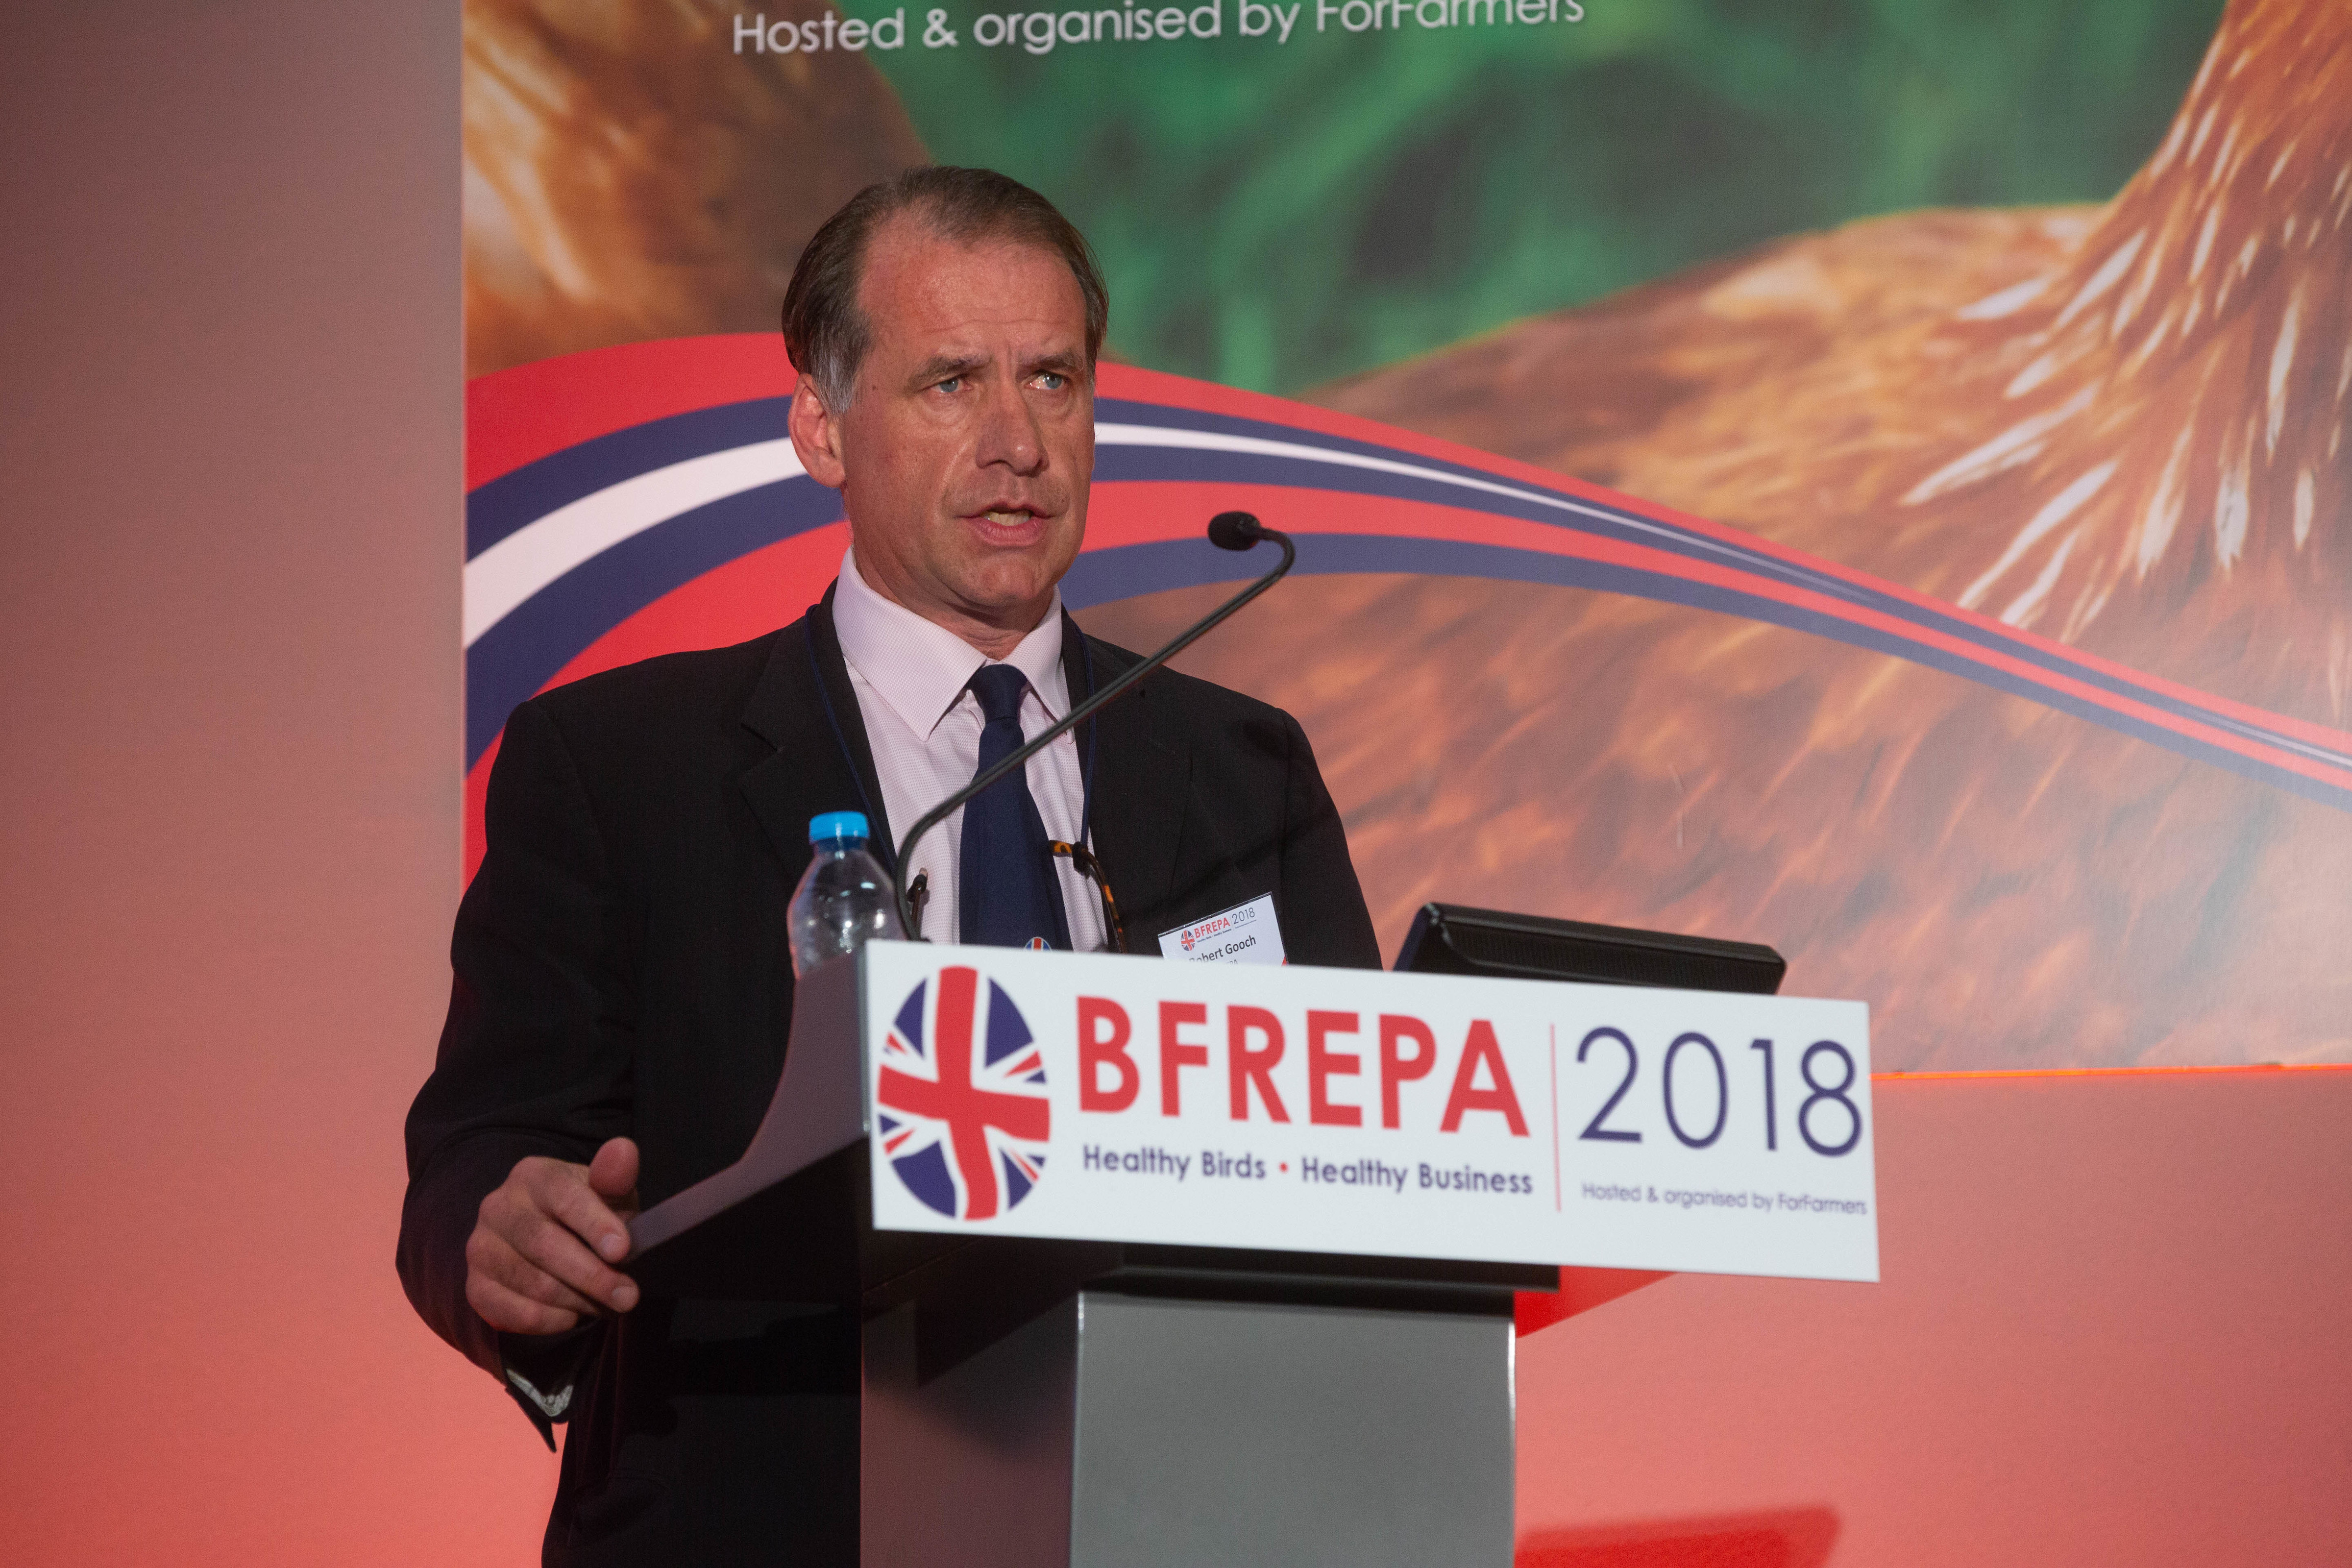 """Bfrepa chief executive described some of the contracts he had seen to date as """"not worth the paper they are written on"""". Photo: Tim Scrivener"""